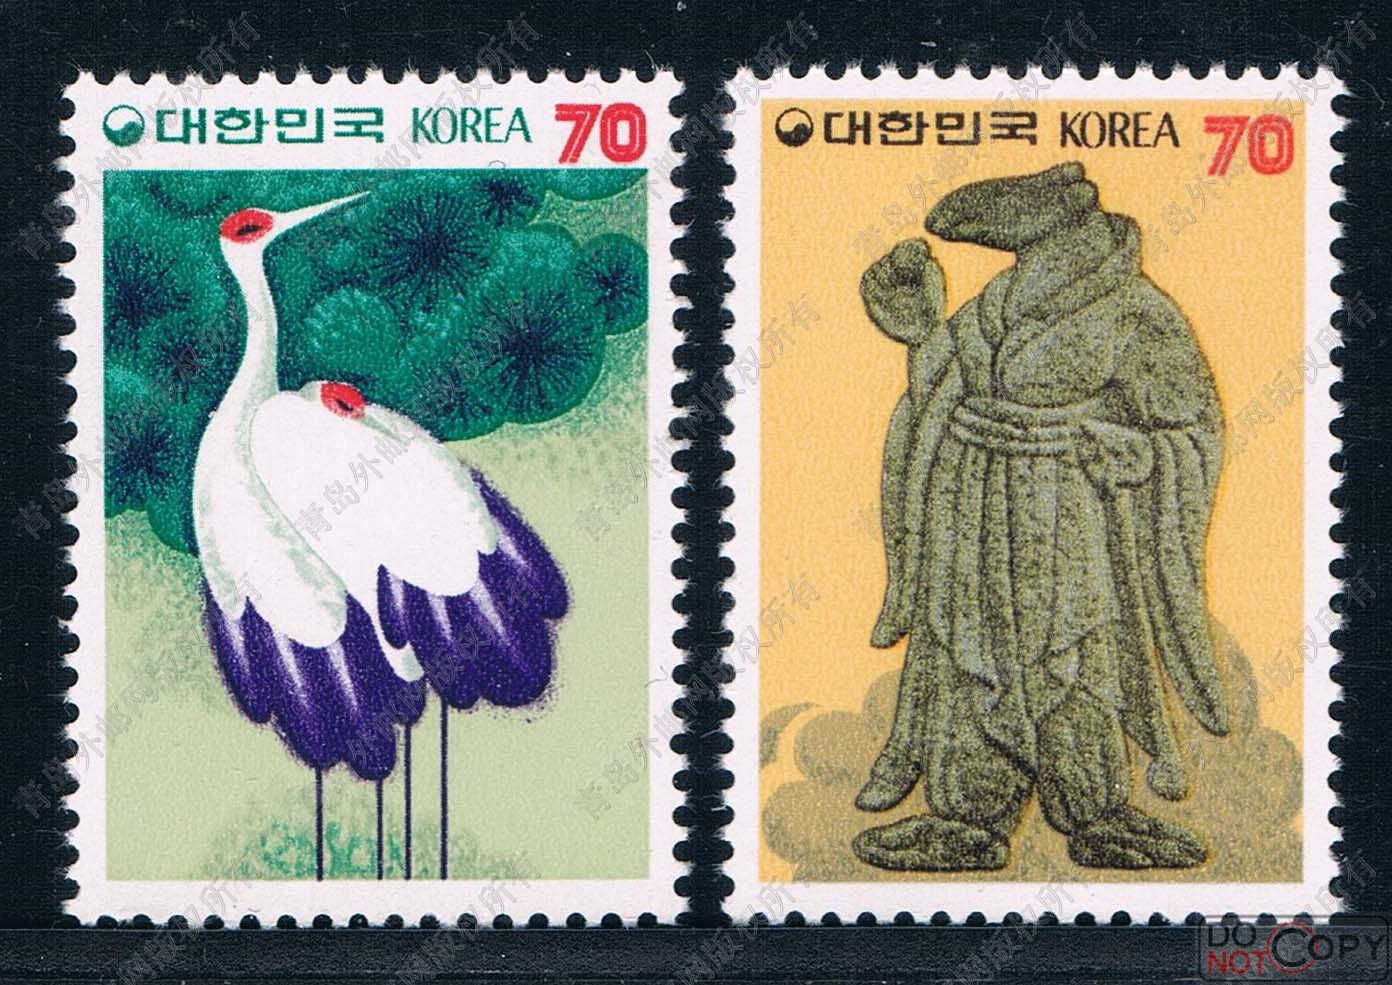 1983 Korea KR0756 China rat Zodiac stamps 2 new 0209 years crane робот zodiac ov3400